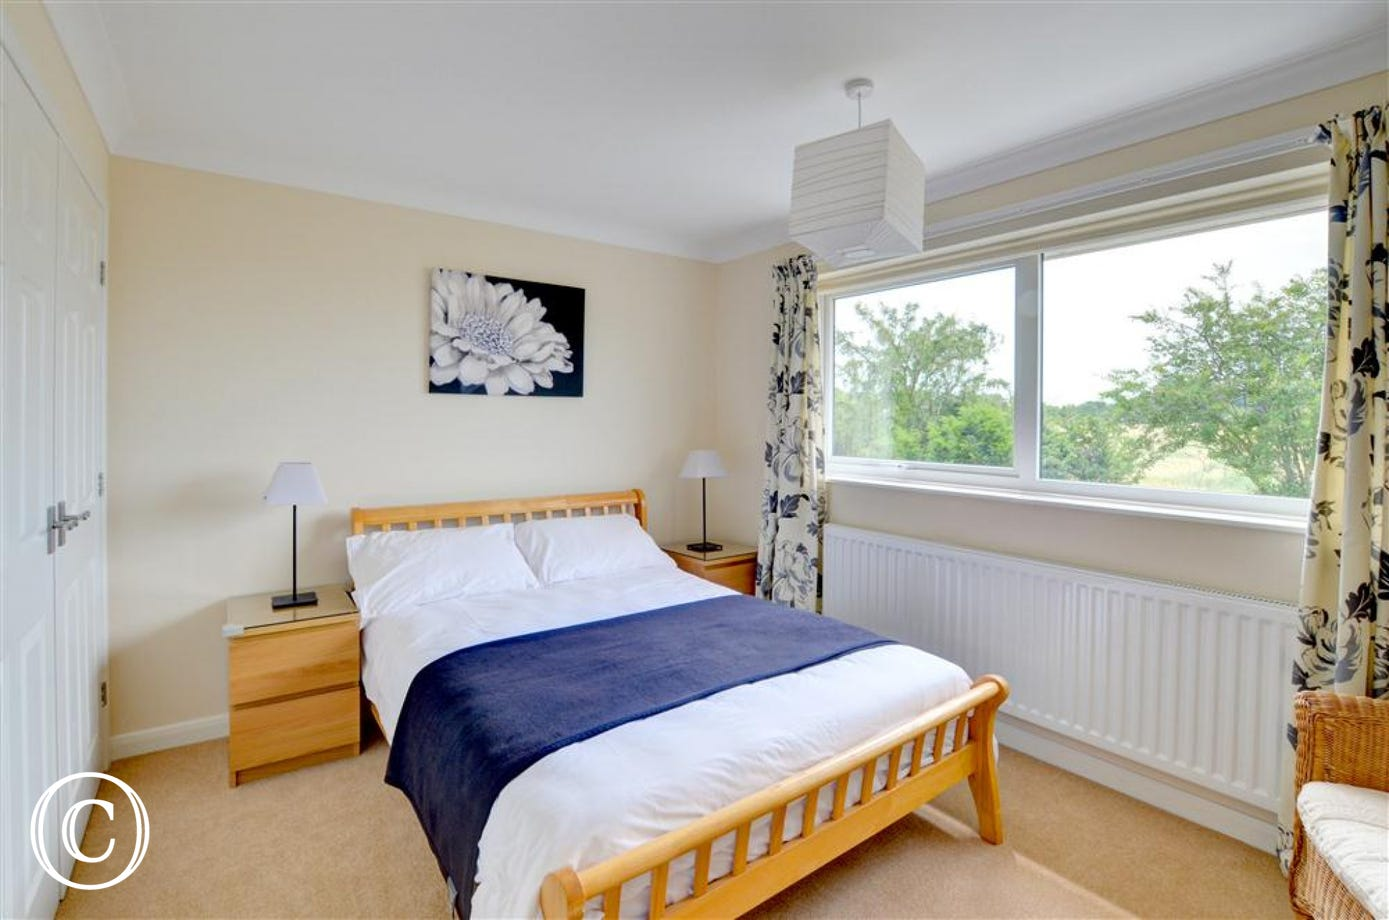 Double bedroom, nicely presented with double bed, bedside tables and large window, with floral blue and white curtains.